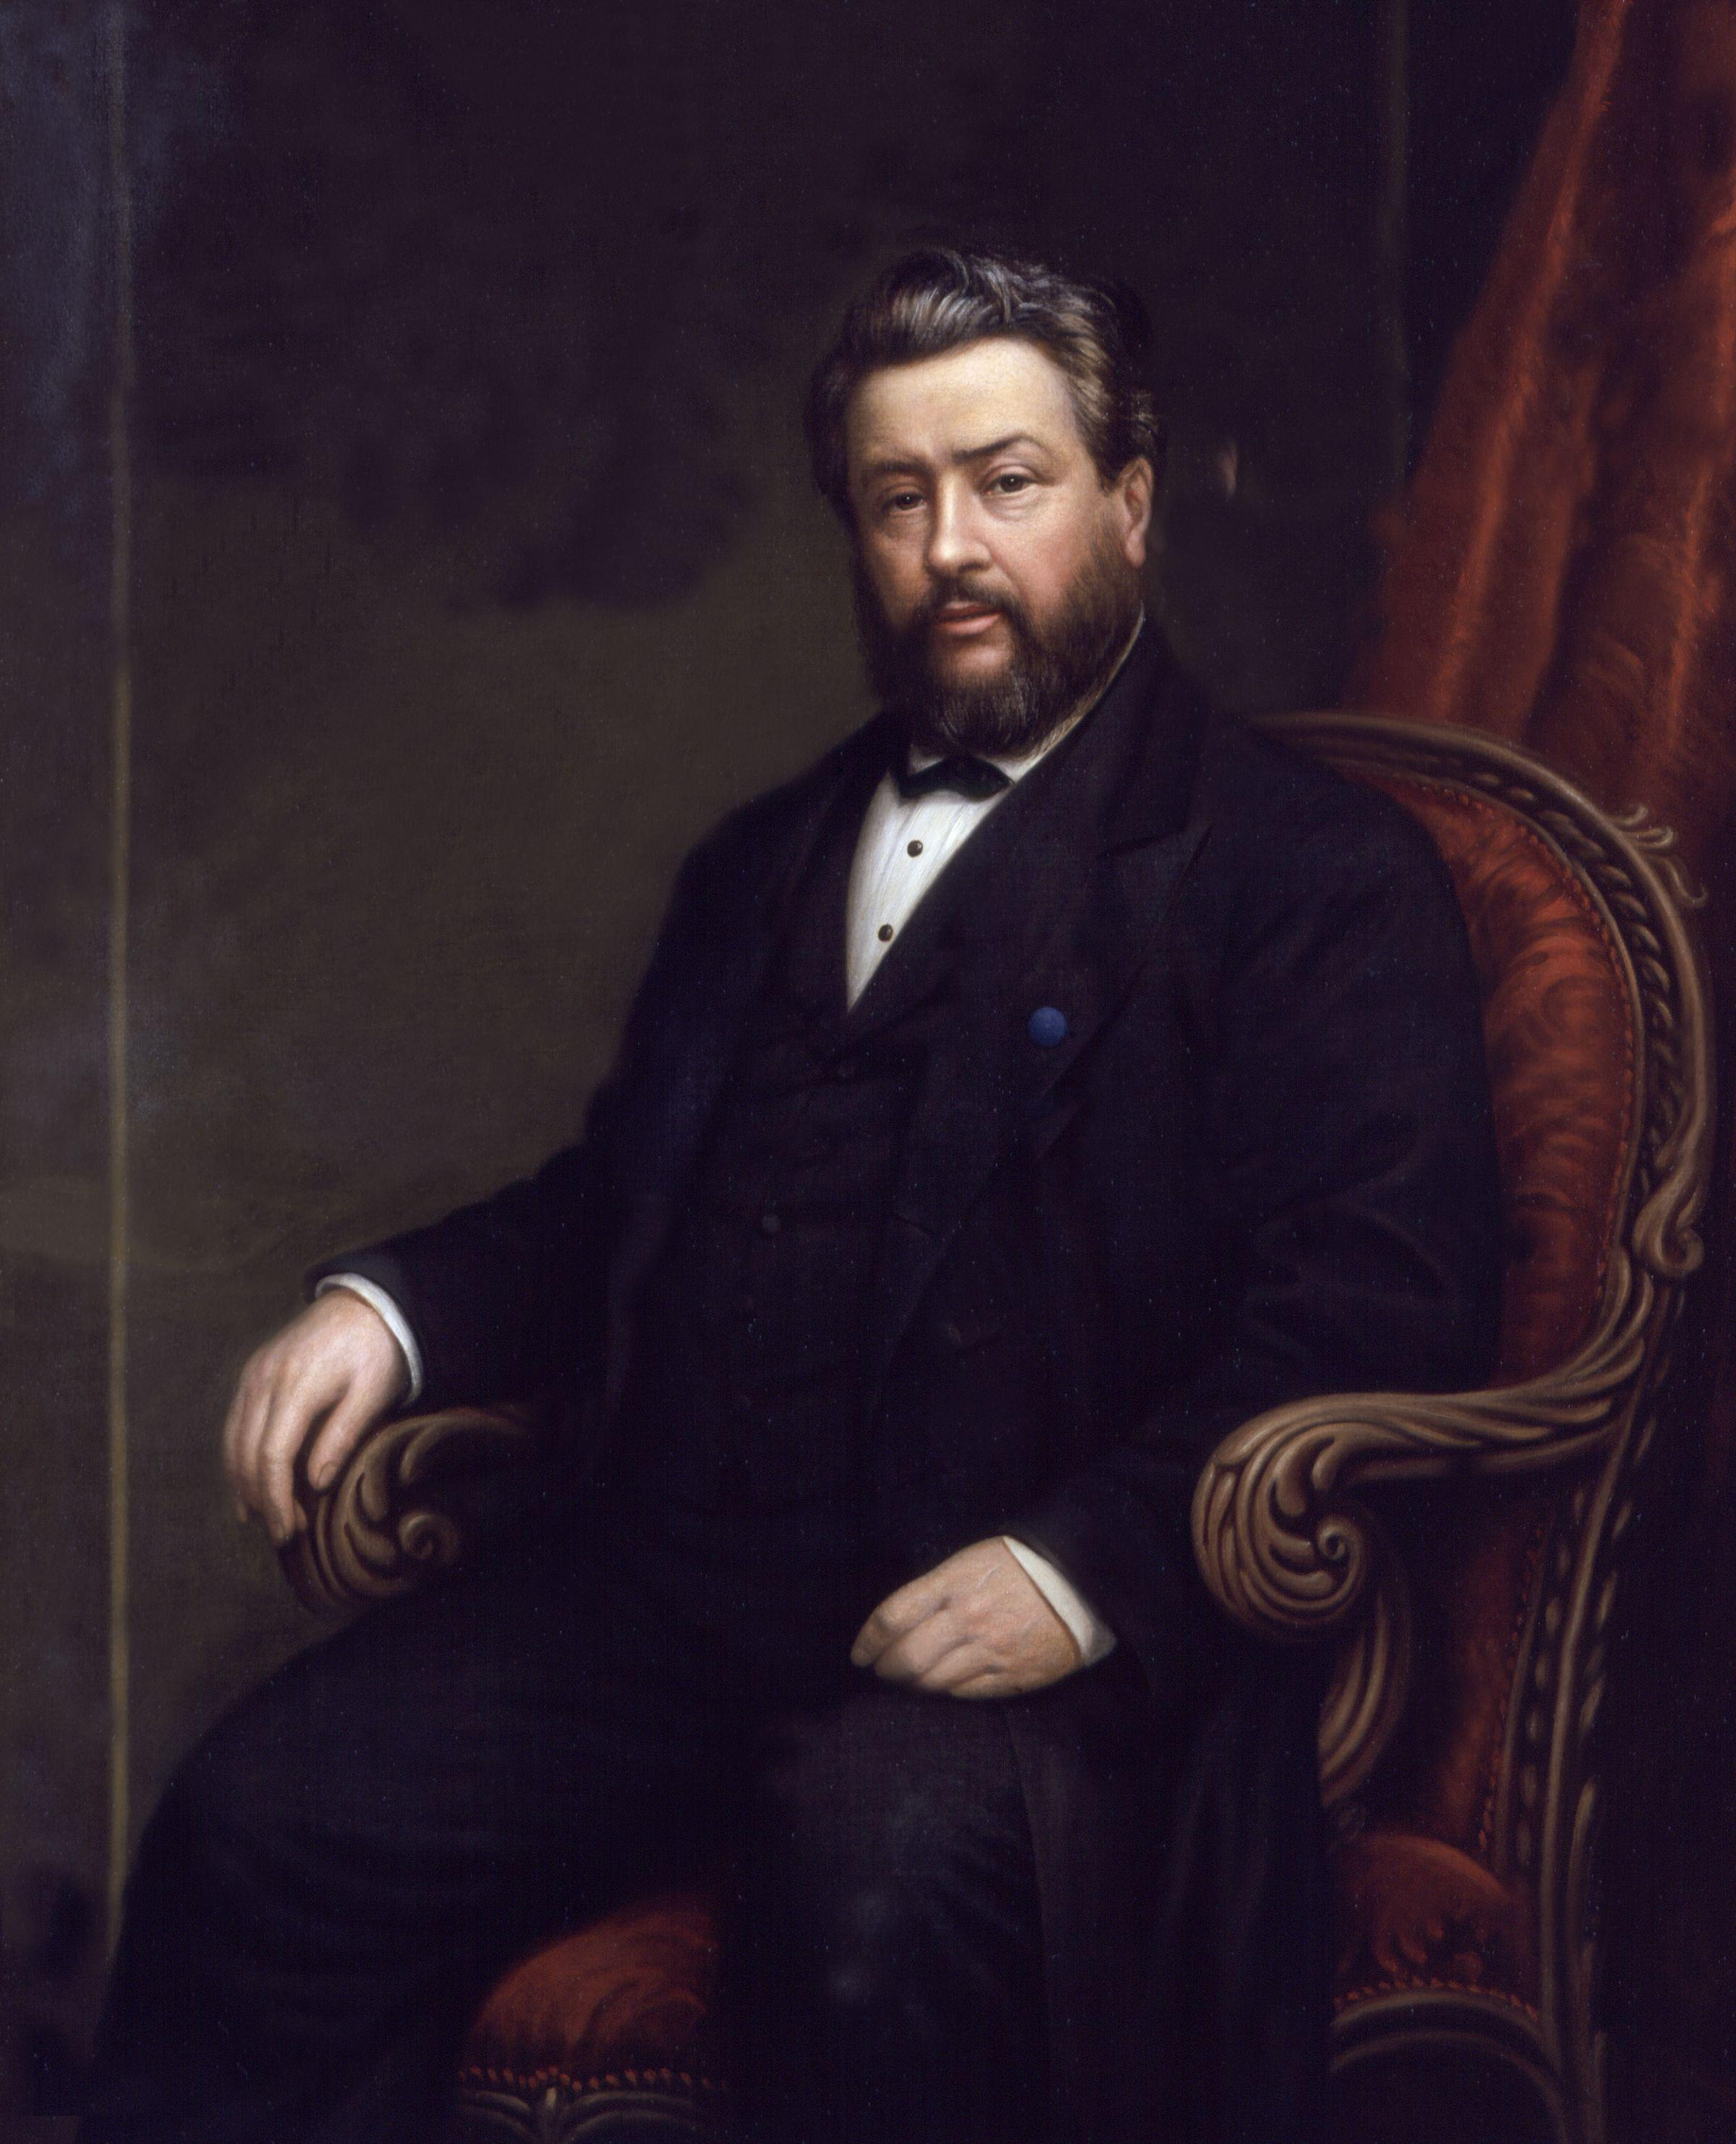 Photo of Charles Spurgeon